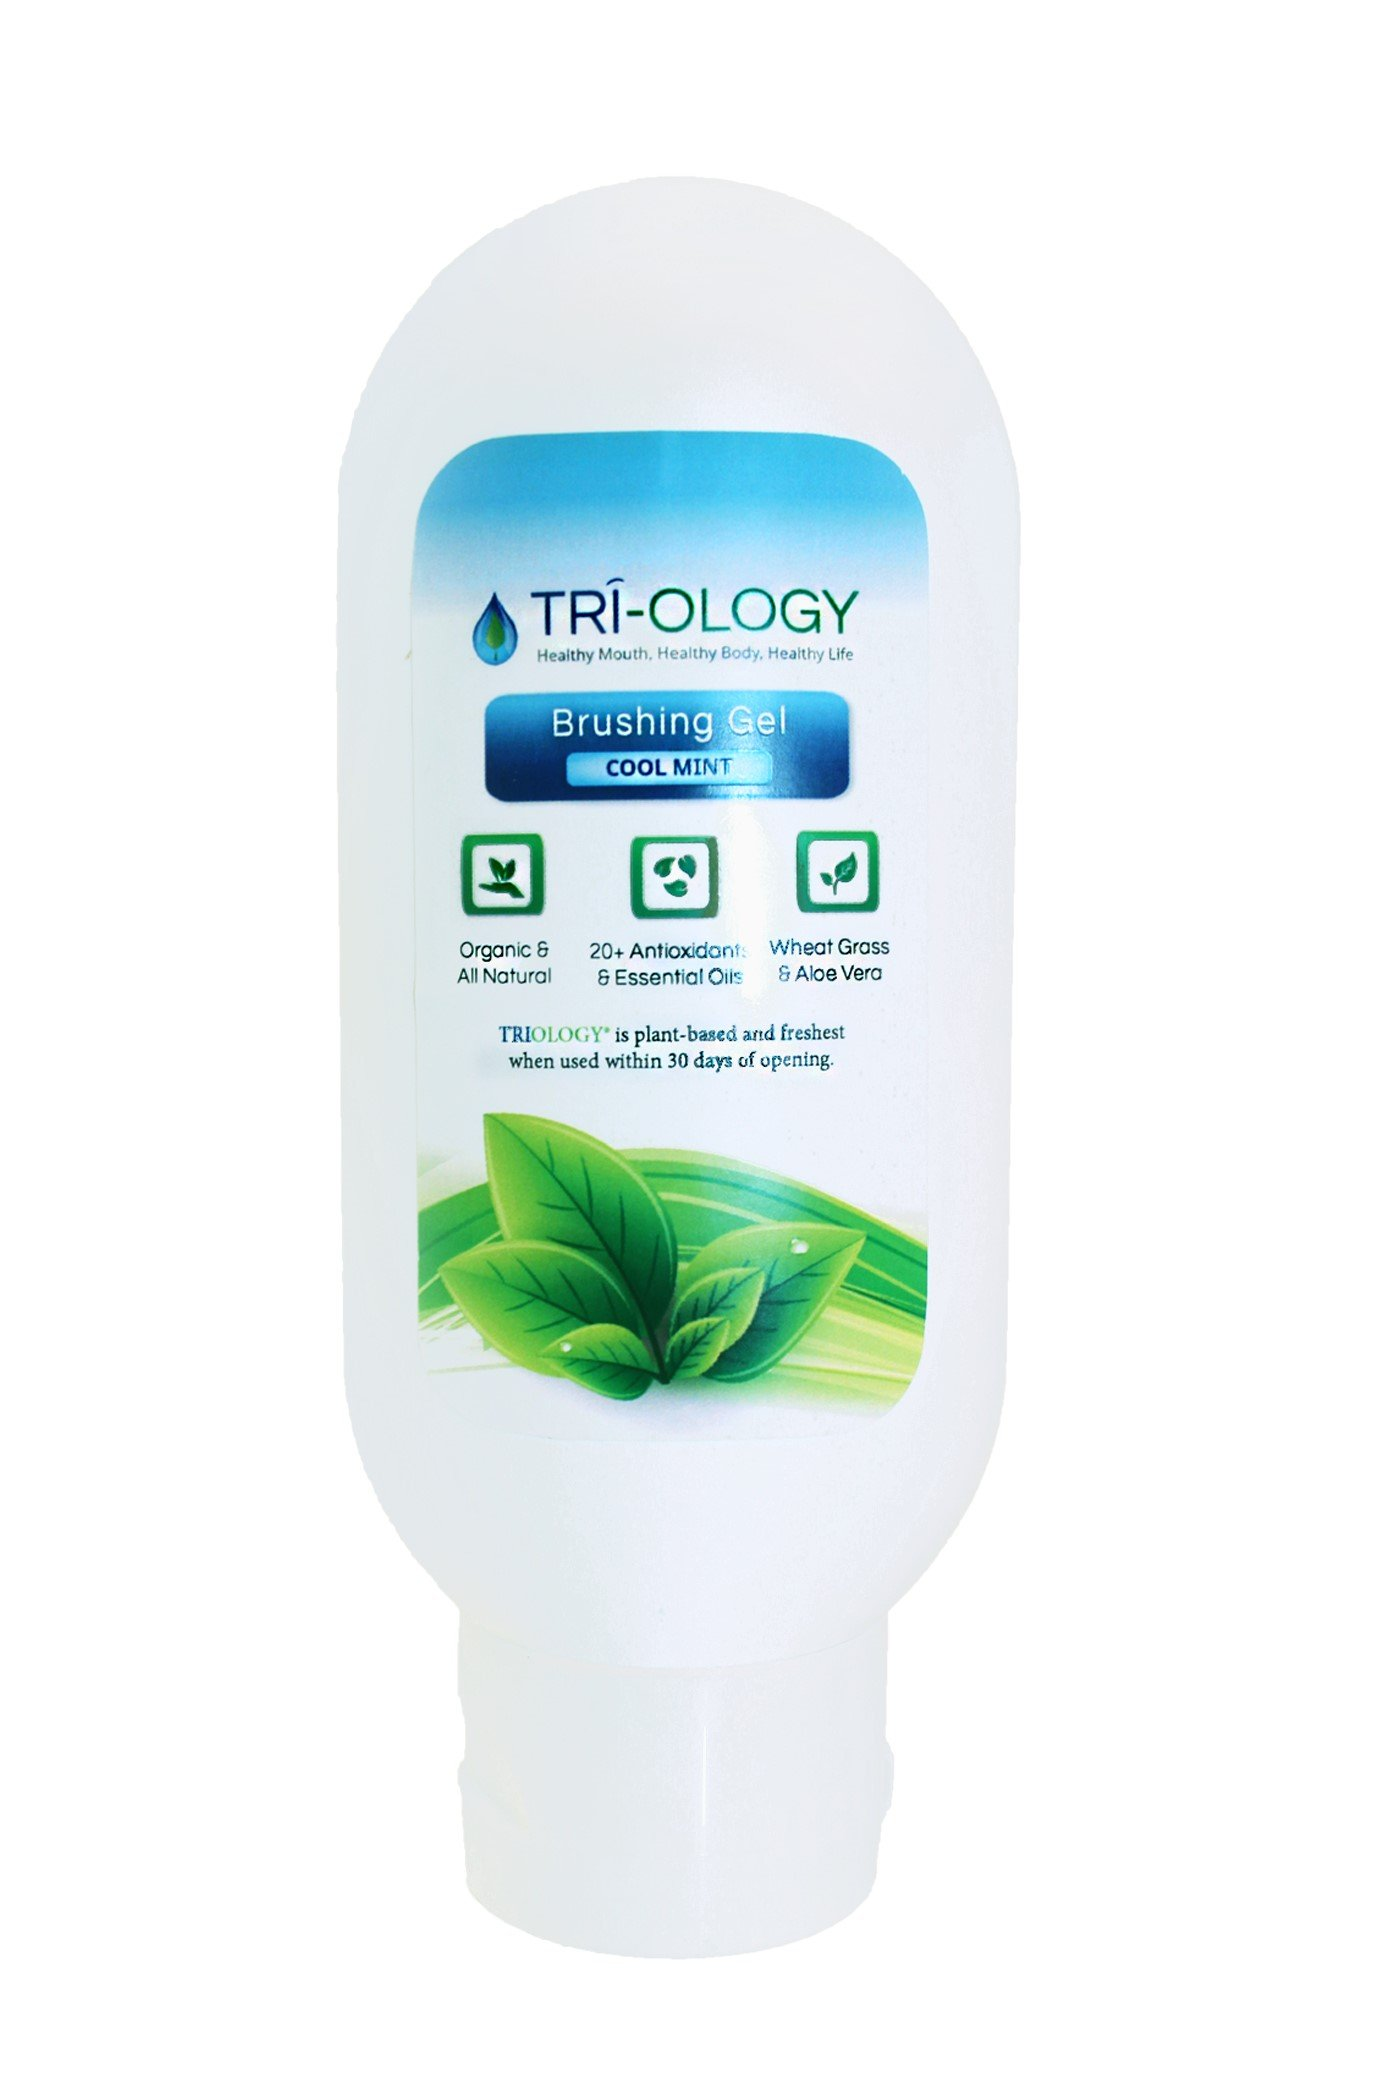 TRIOLOGY Brushing Gel & Rinse 6 Month Bundle by TRIOLOGY (Image #1)